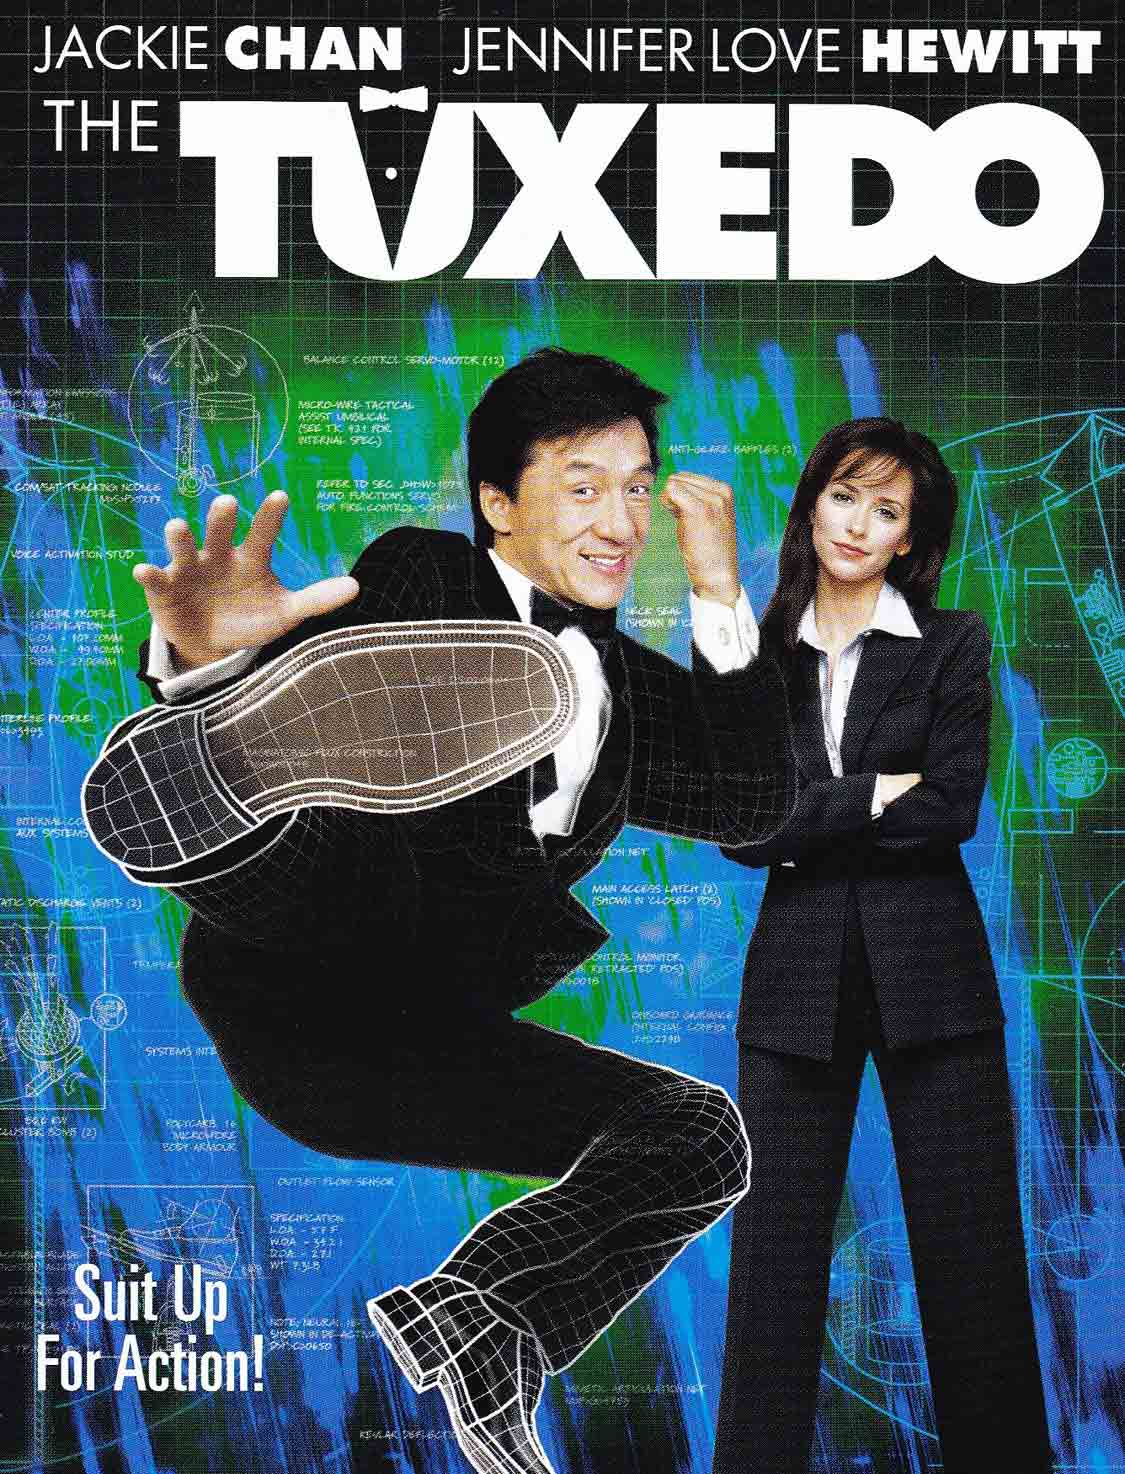 The illusionist Loran - Biography - Consultant for Jackie Chan in the movie The Tuxedo